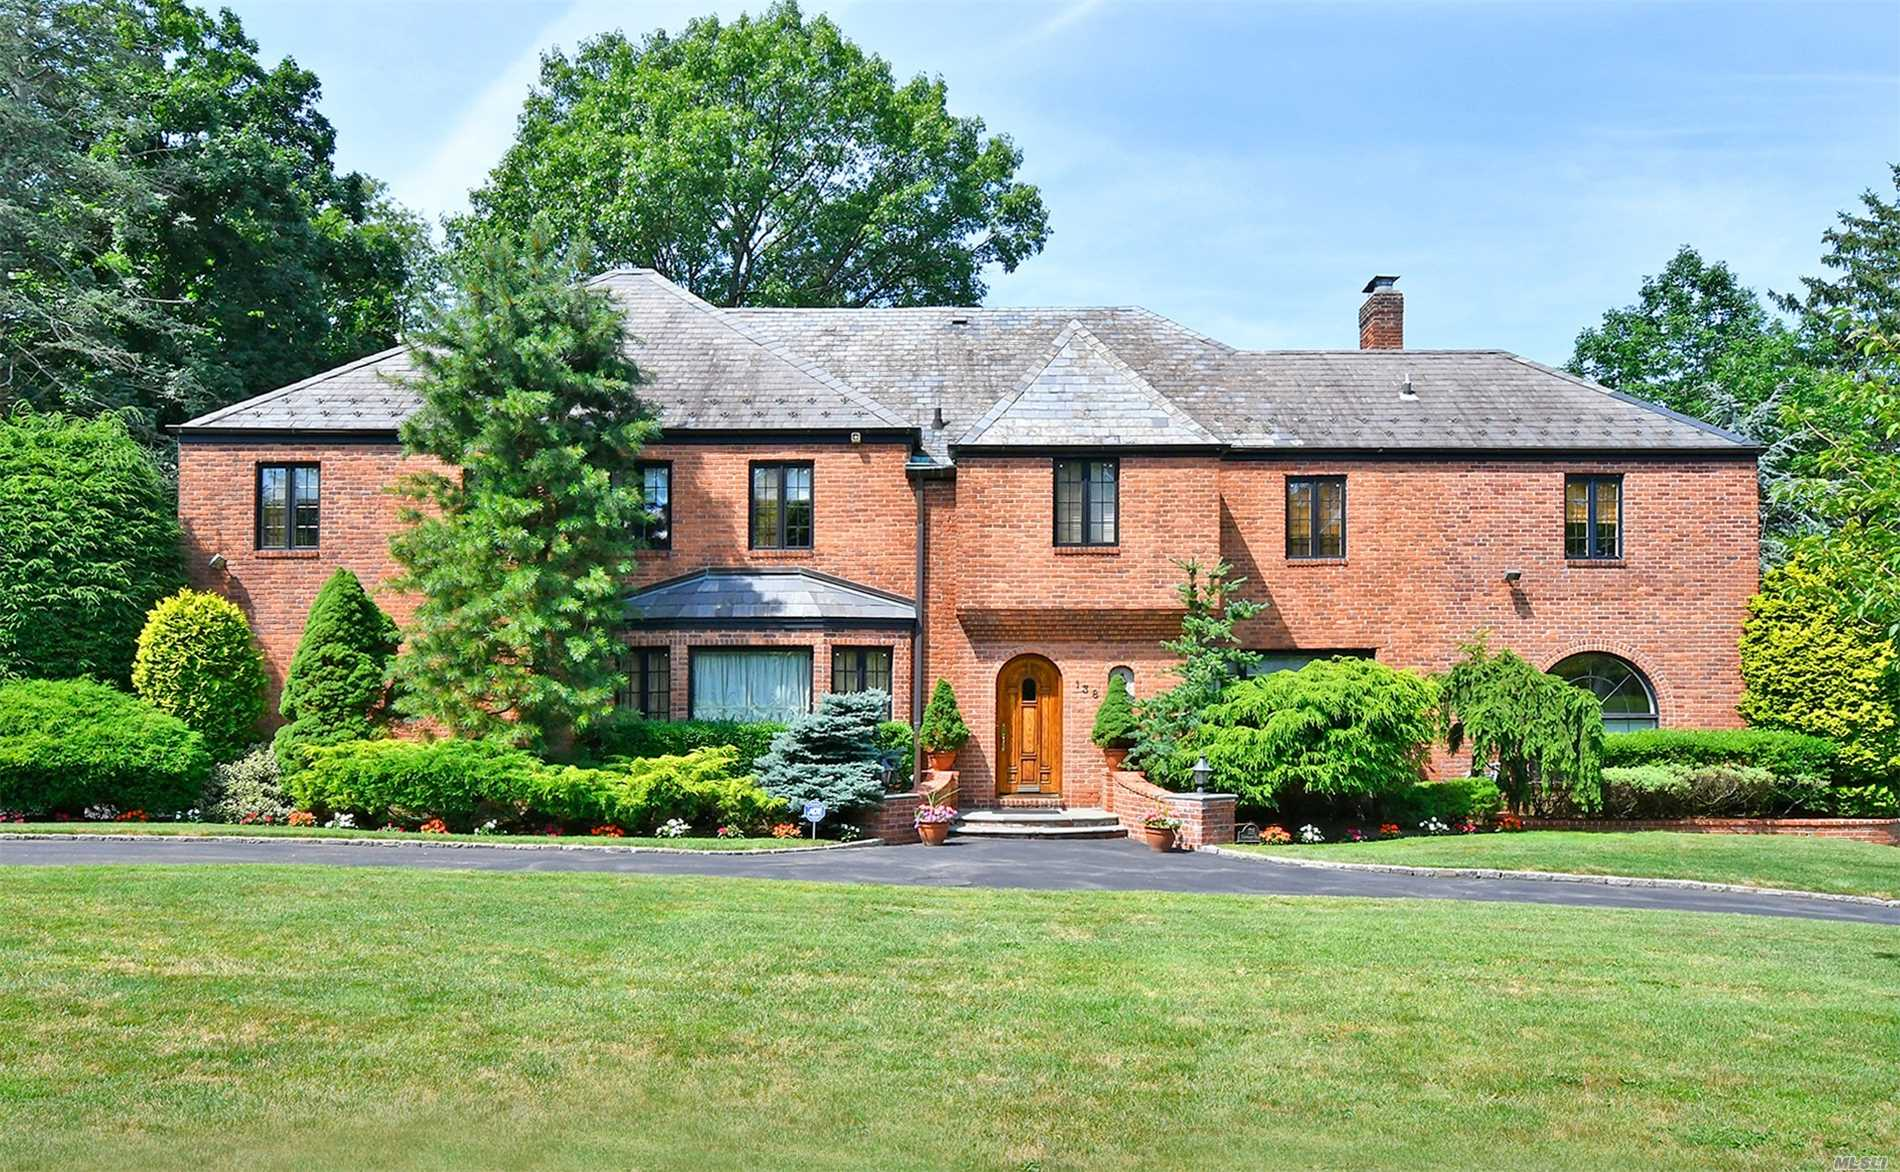 Photo of home for sale at 138 Rockcrest Rd, Manhasset NY